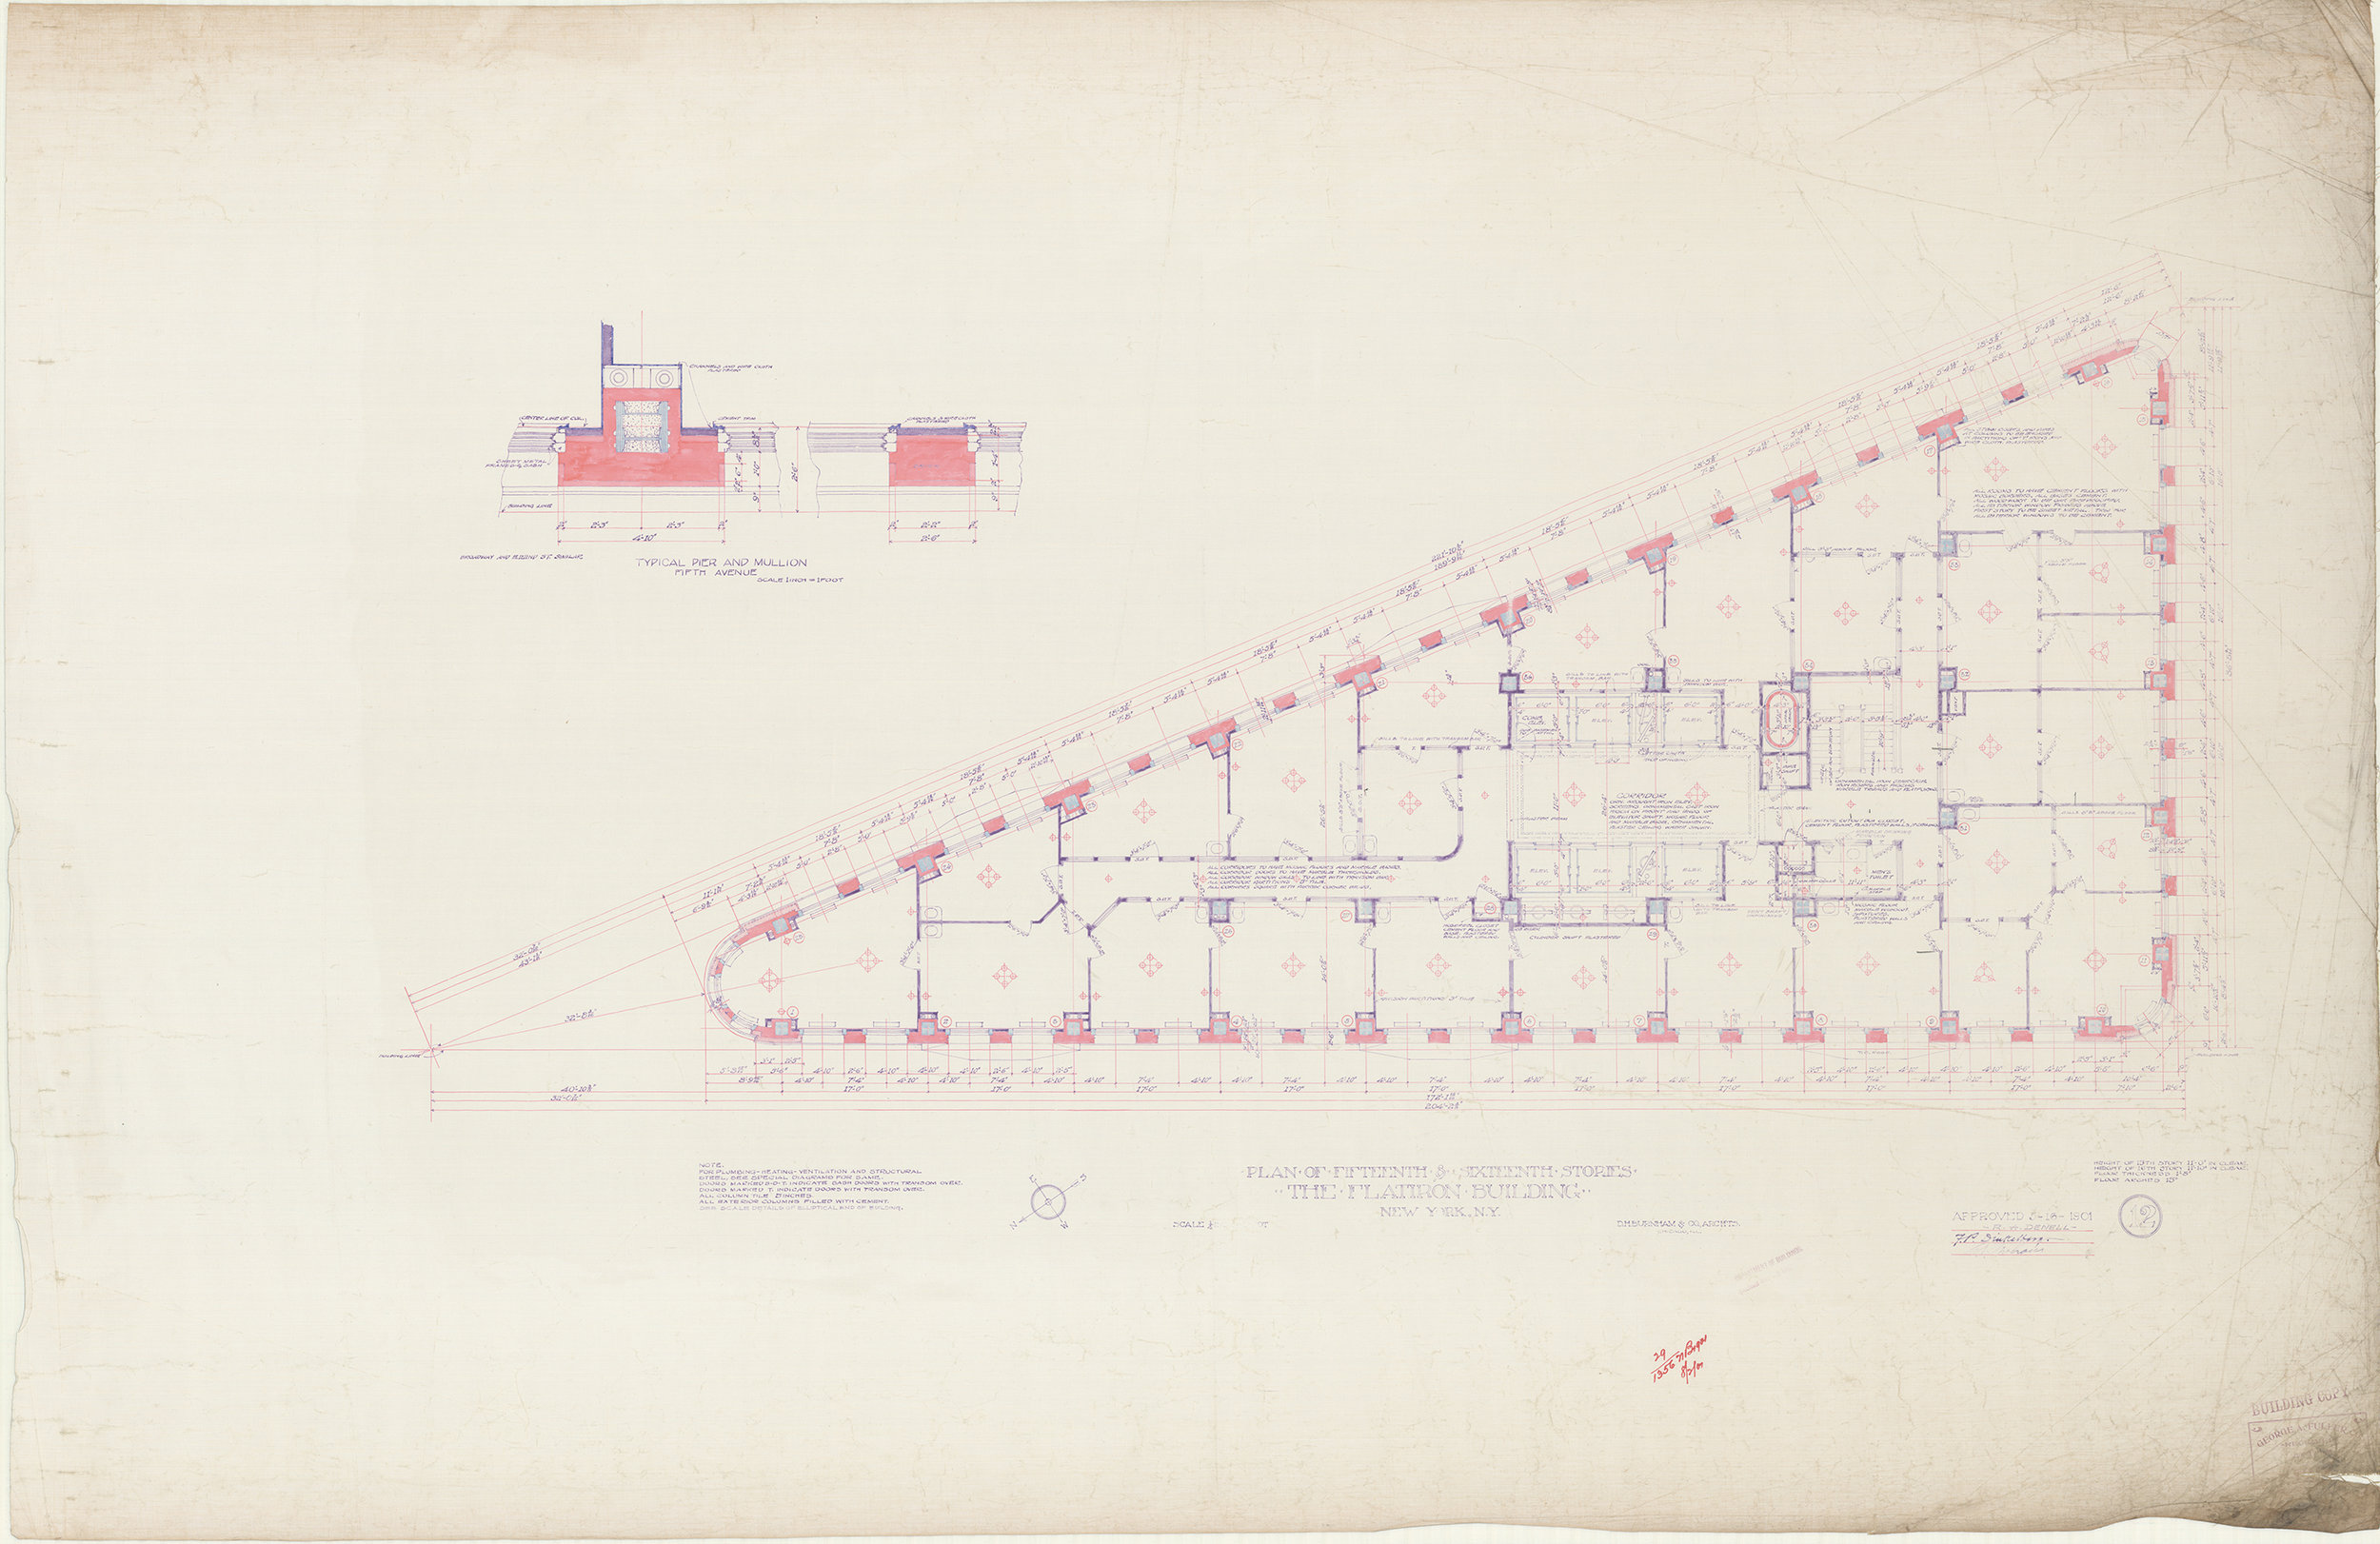 Plan of Fifteenth & Sixteenth Stories, The Flatiron Building, 1901. D.G. Burnham & Co. Architects. Department of Buildings Collection, NYC Municipal Archives.